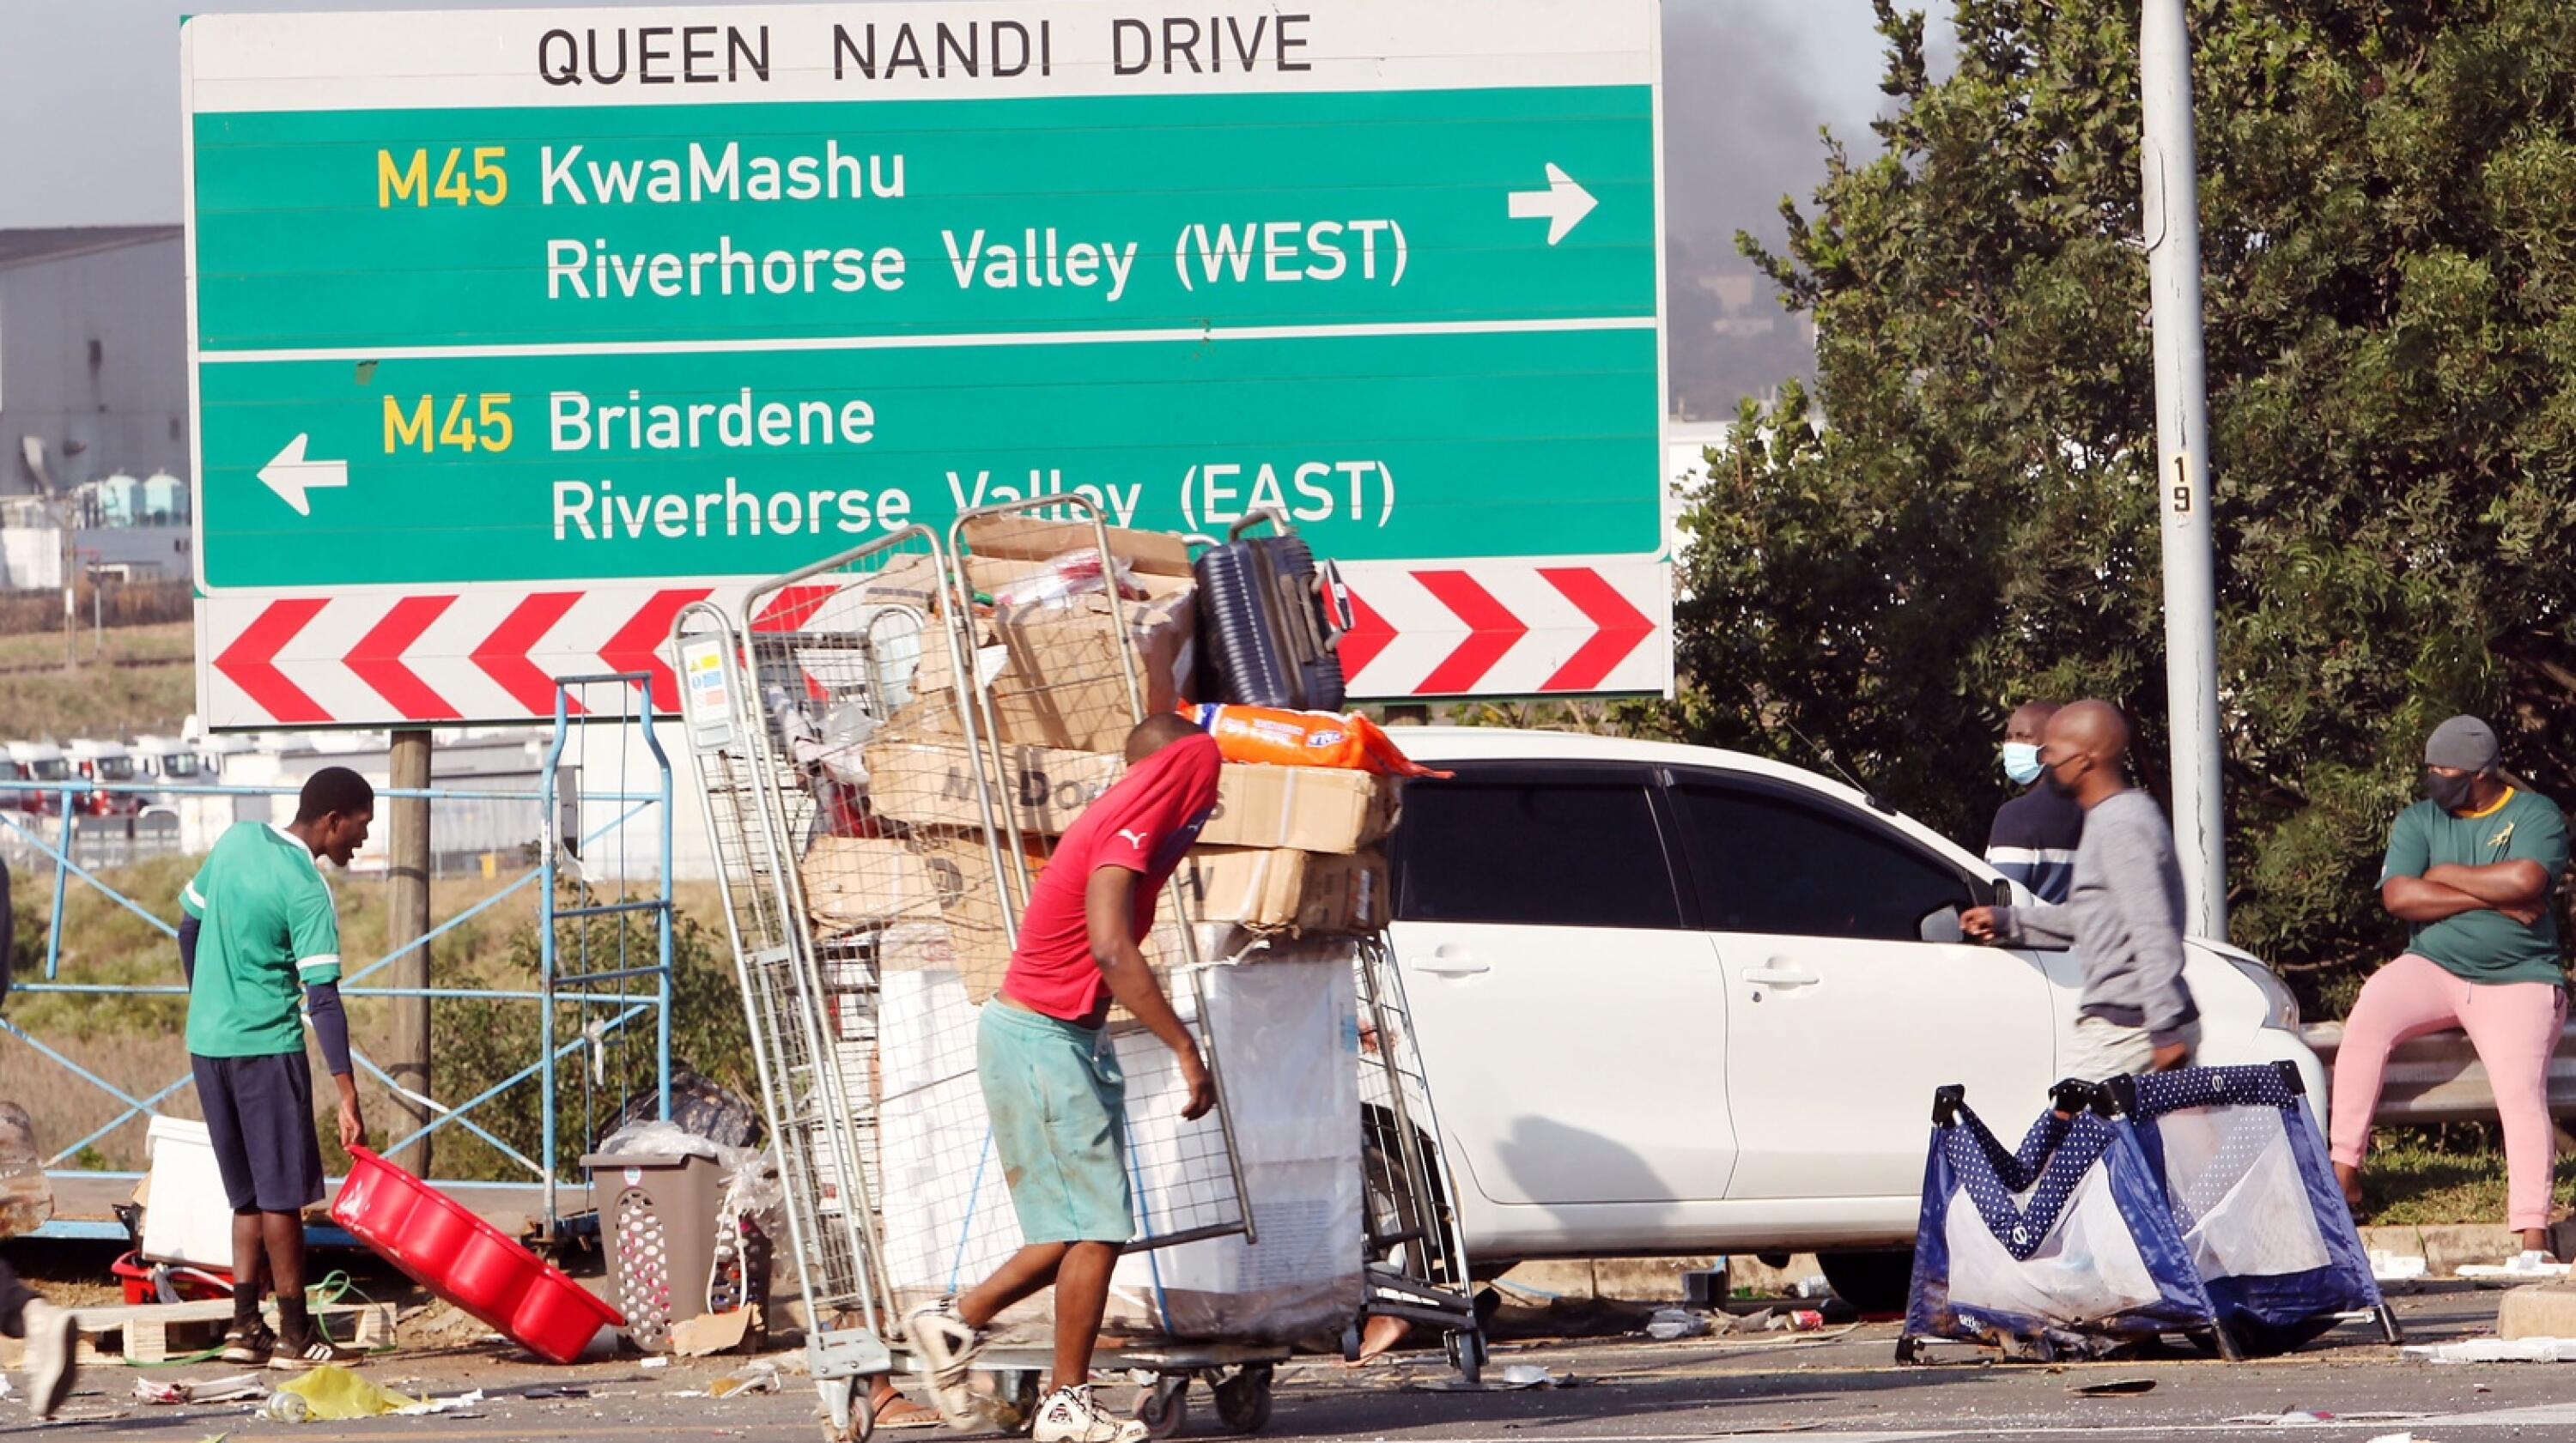 The Pietermaritzburg Economic Justice and Dignity group (PMBEJD) said its September report had shown a massive food price spike in cities that had been affected by the recent unrests.